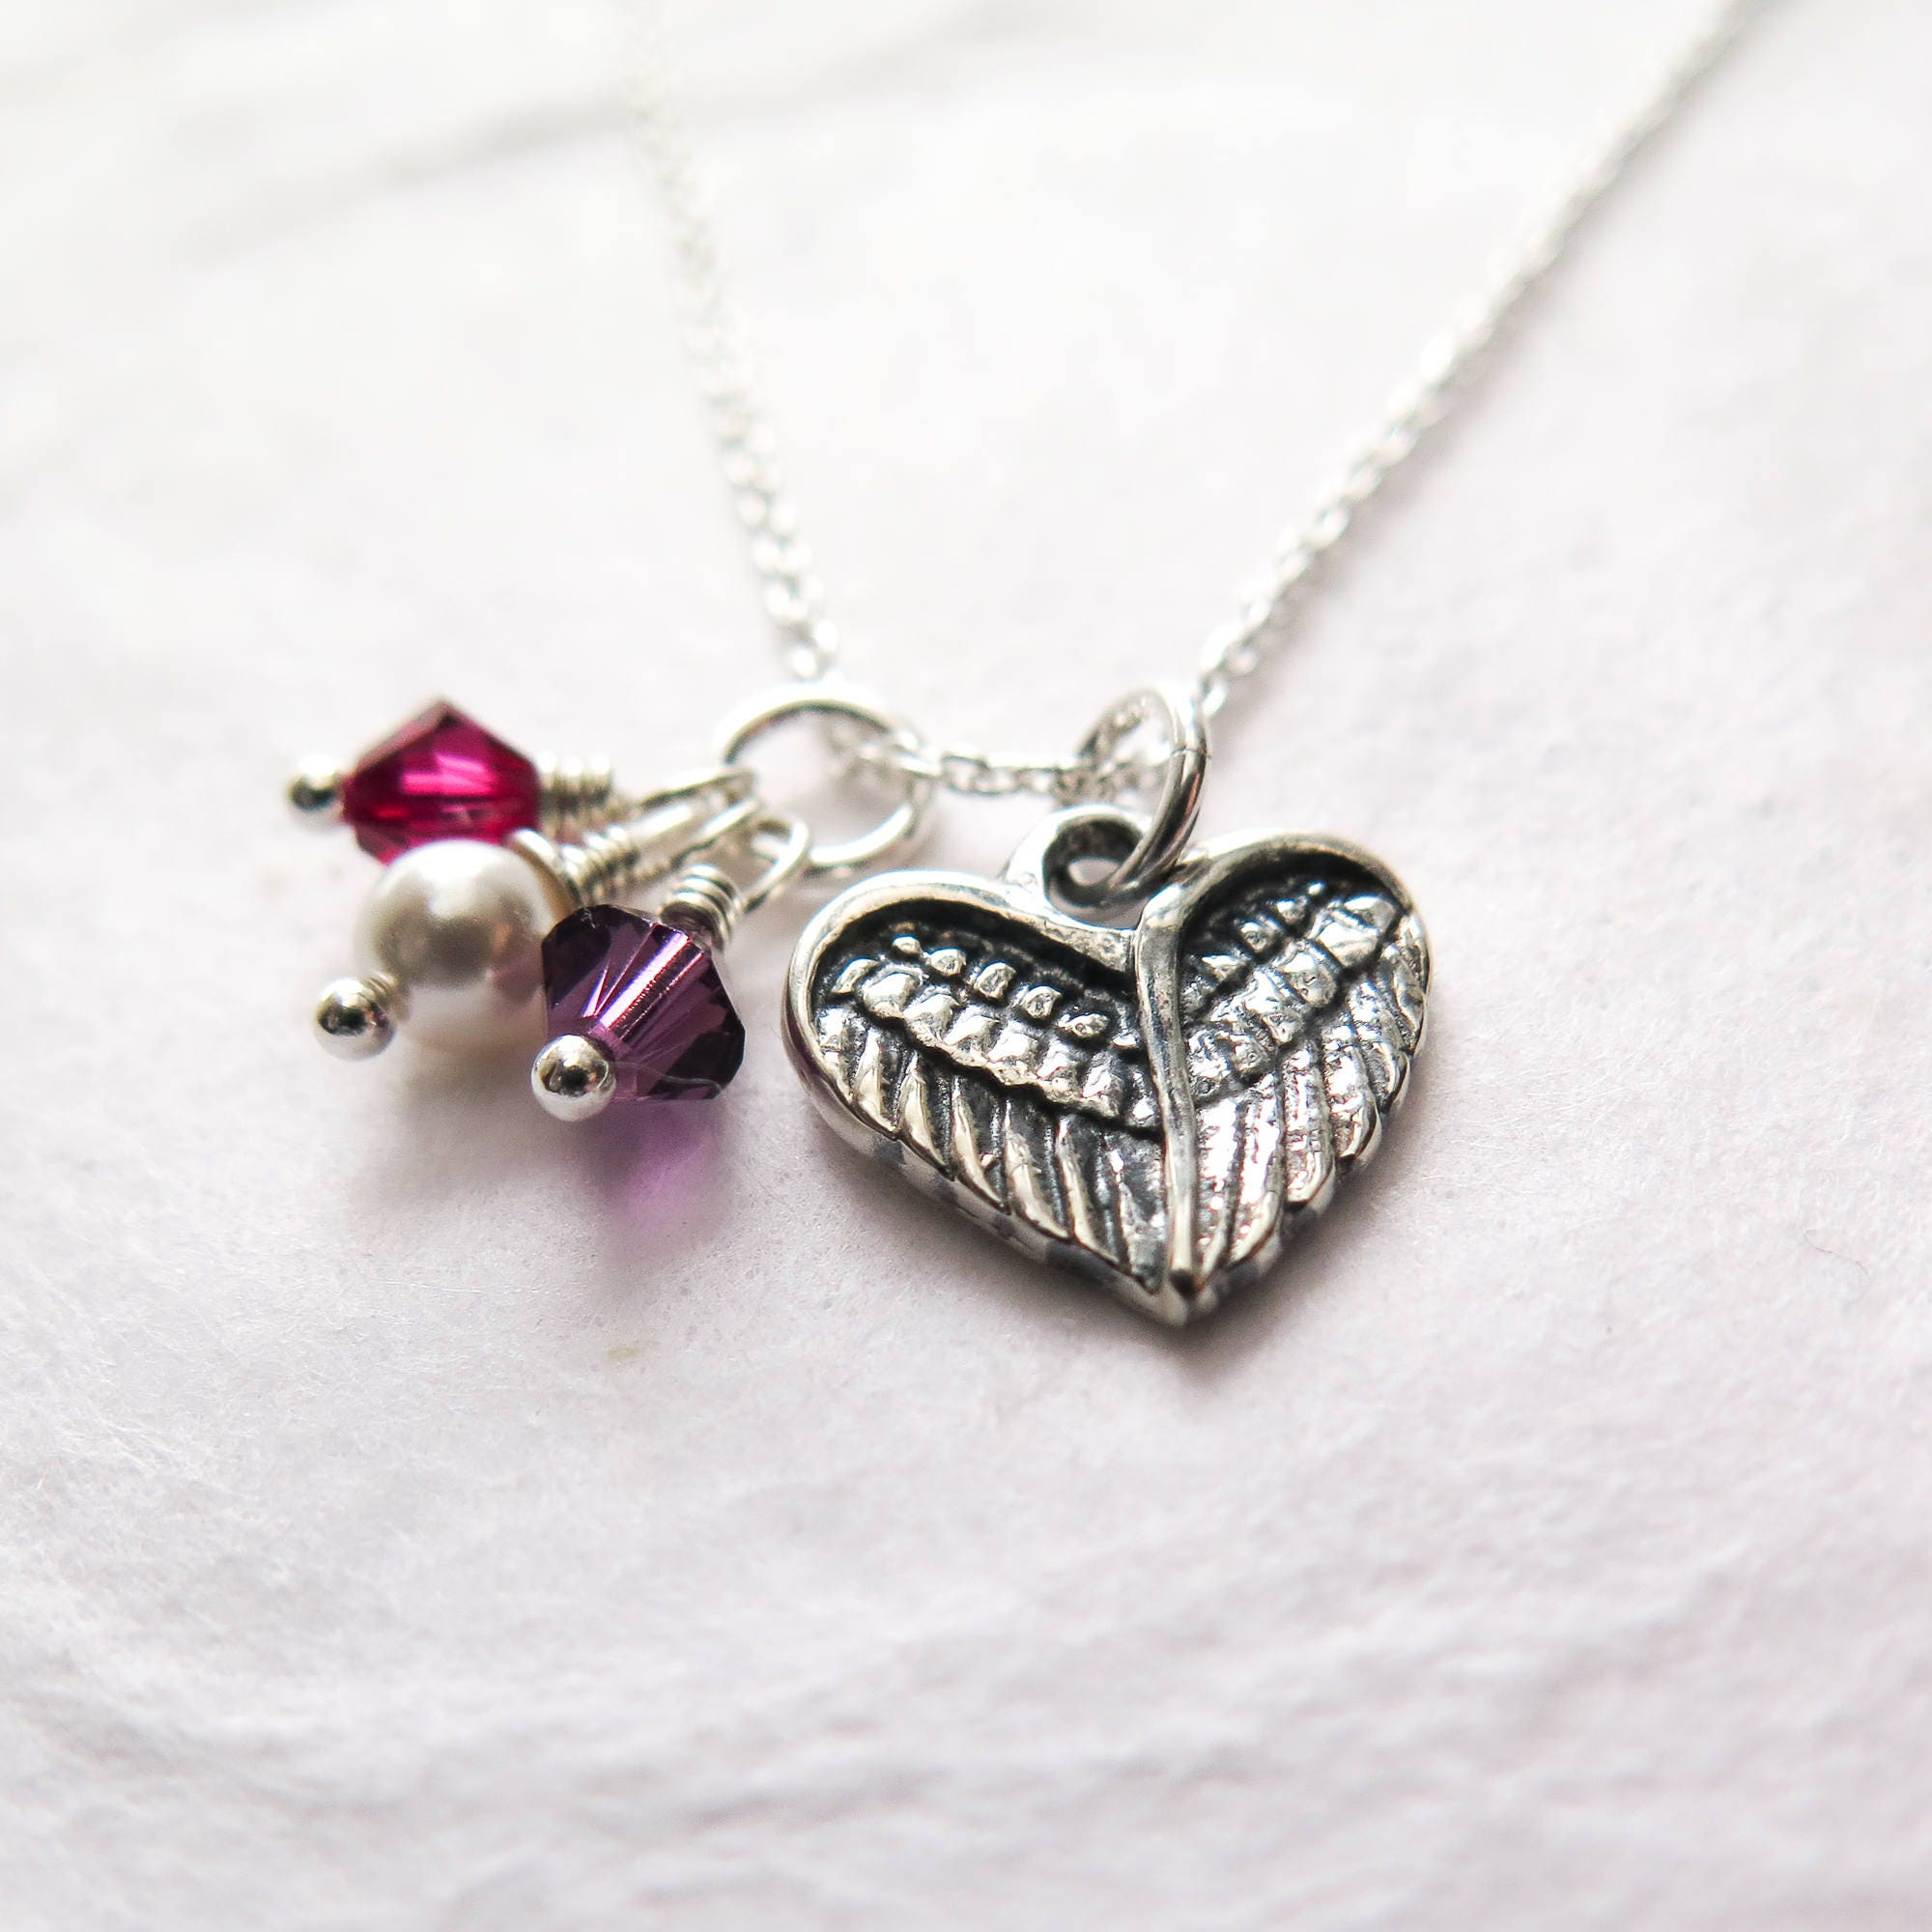 Miscarriage necklace personalized baby loss jewelry remembrance miscarriage necklace personalized baby loss jewelry remembrance necklace sympathy gift angel wing heart swarovski birthstone handmade negle Choice Image